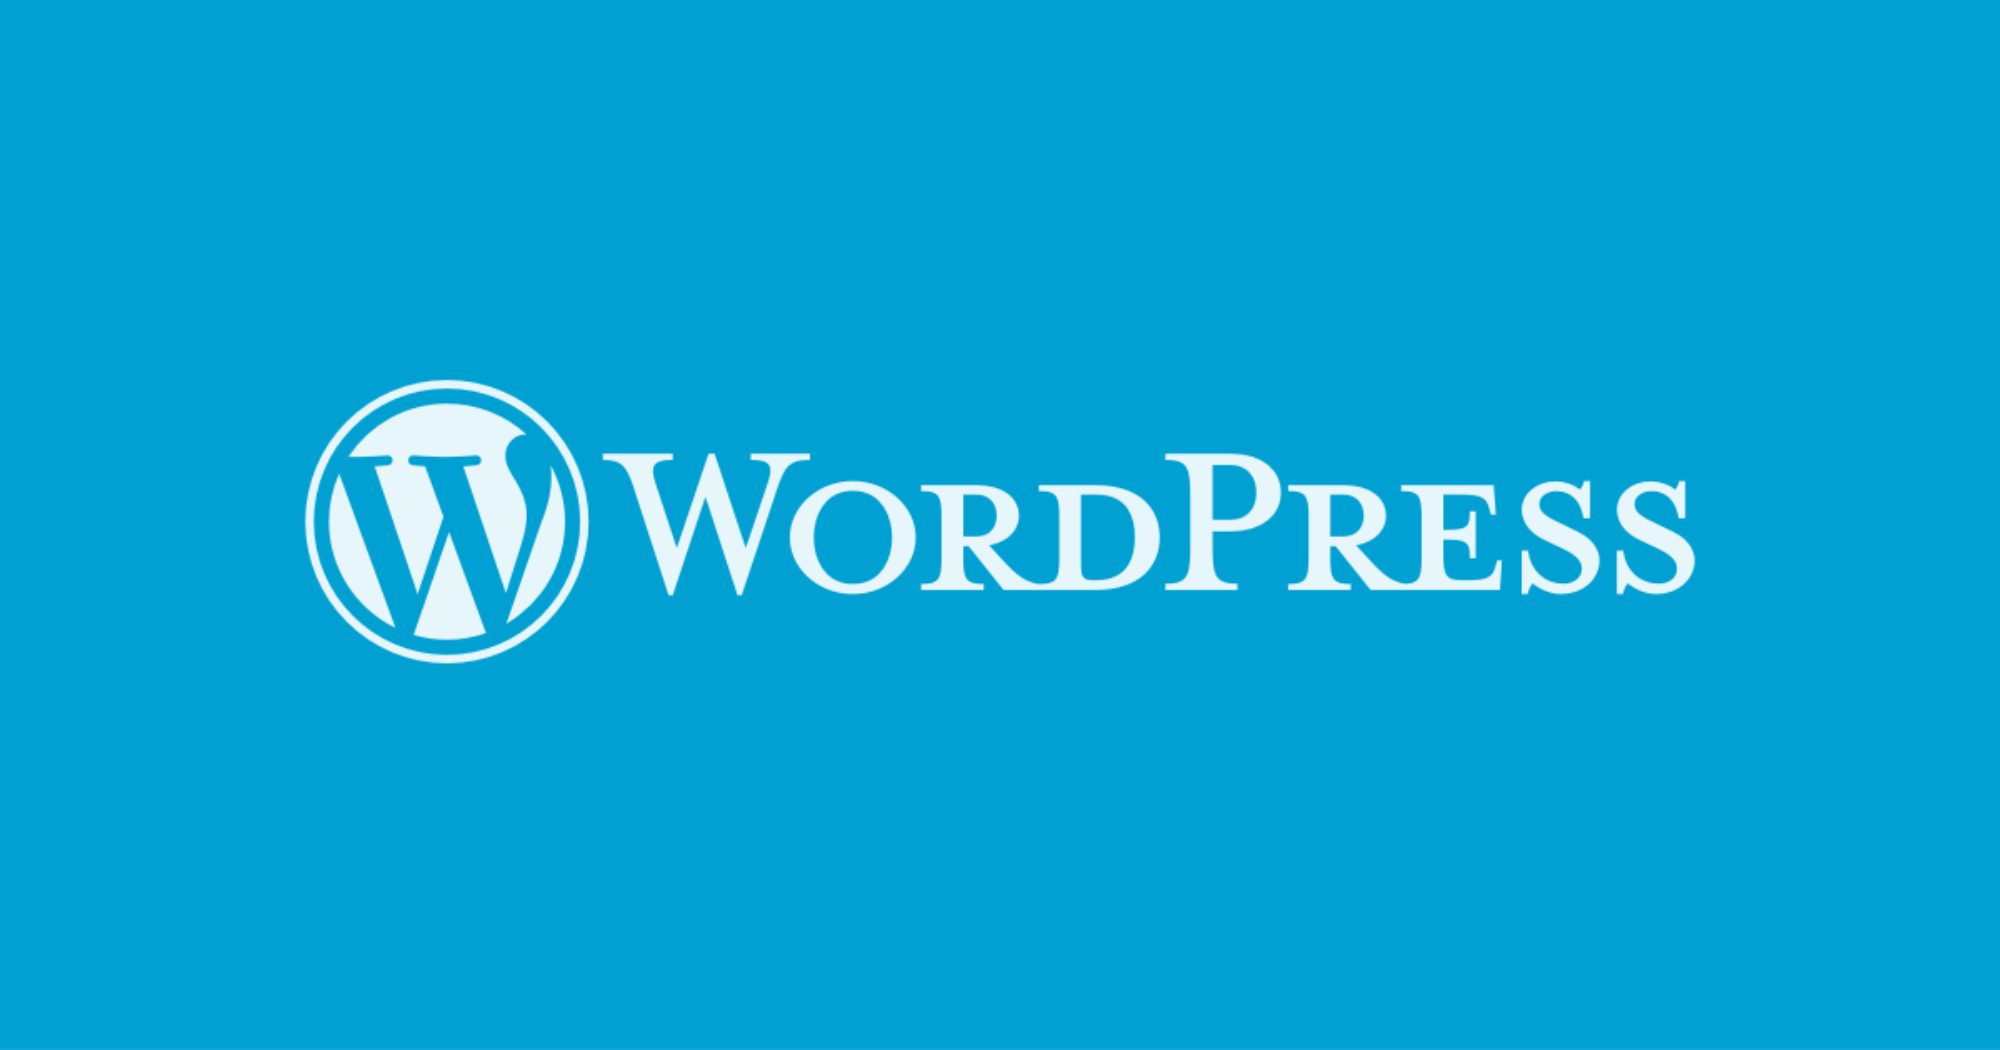 WordPress 5.2.2 Update